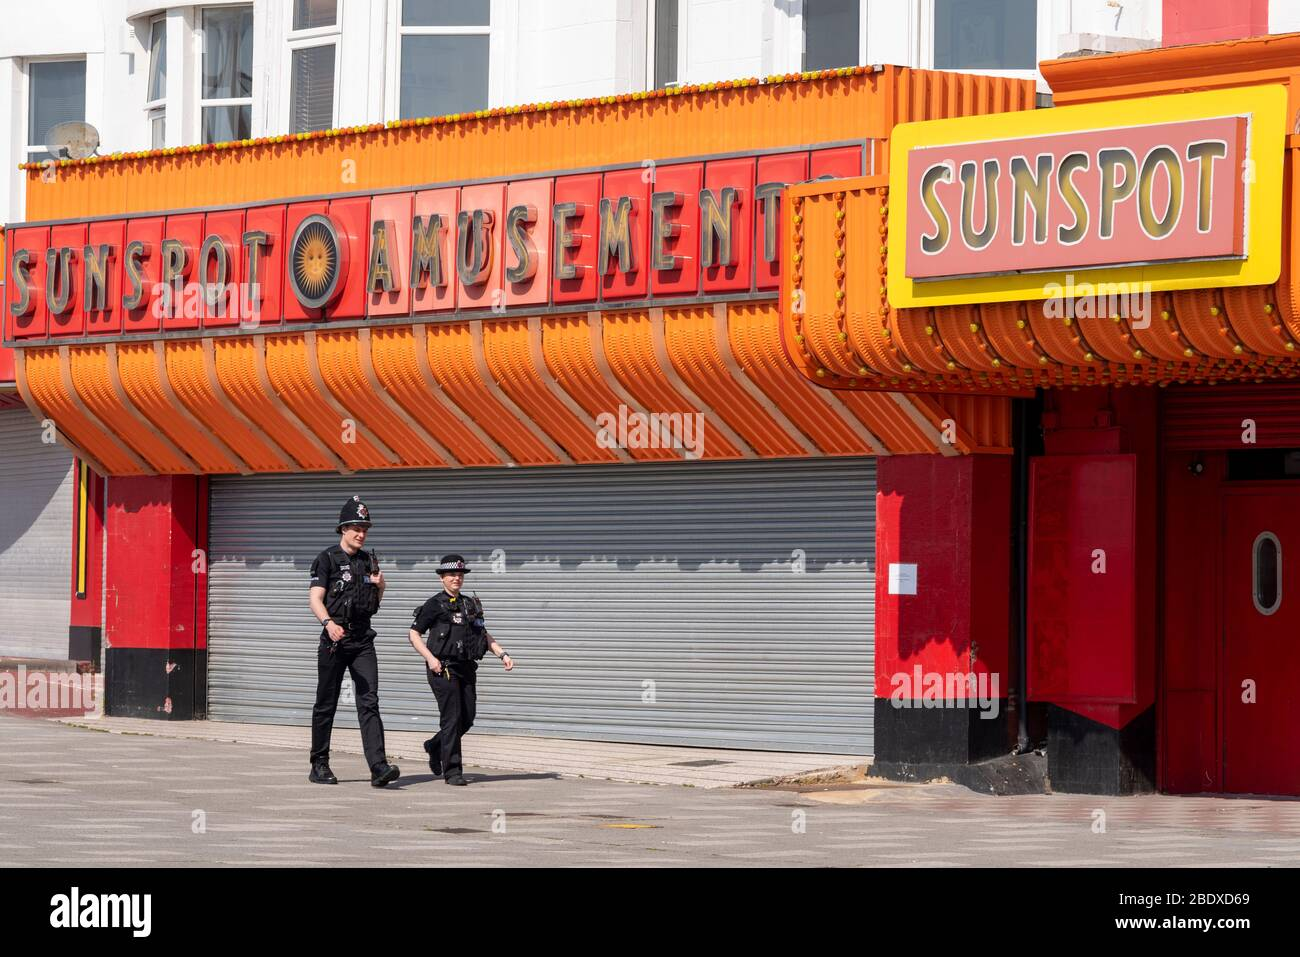 southend-on-sea-essex-uk-10th-apr-2020-on-the-first-day-of-the-easter-weekend-during-the-covid-19-coronavirus-lockdown-period-people-are-making-use-of-southend-on-seas-seafront-to-enjoy-the-sunny-and-warm-weather-police-and-civil-enforcement-officers-are-patrolling-the-areas-with-car-parks-and-businesses-closed-police-officers-walking-past-closed-amusement-arcade-business-2BDXD69.jpg